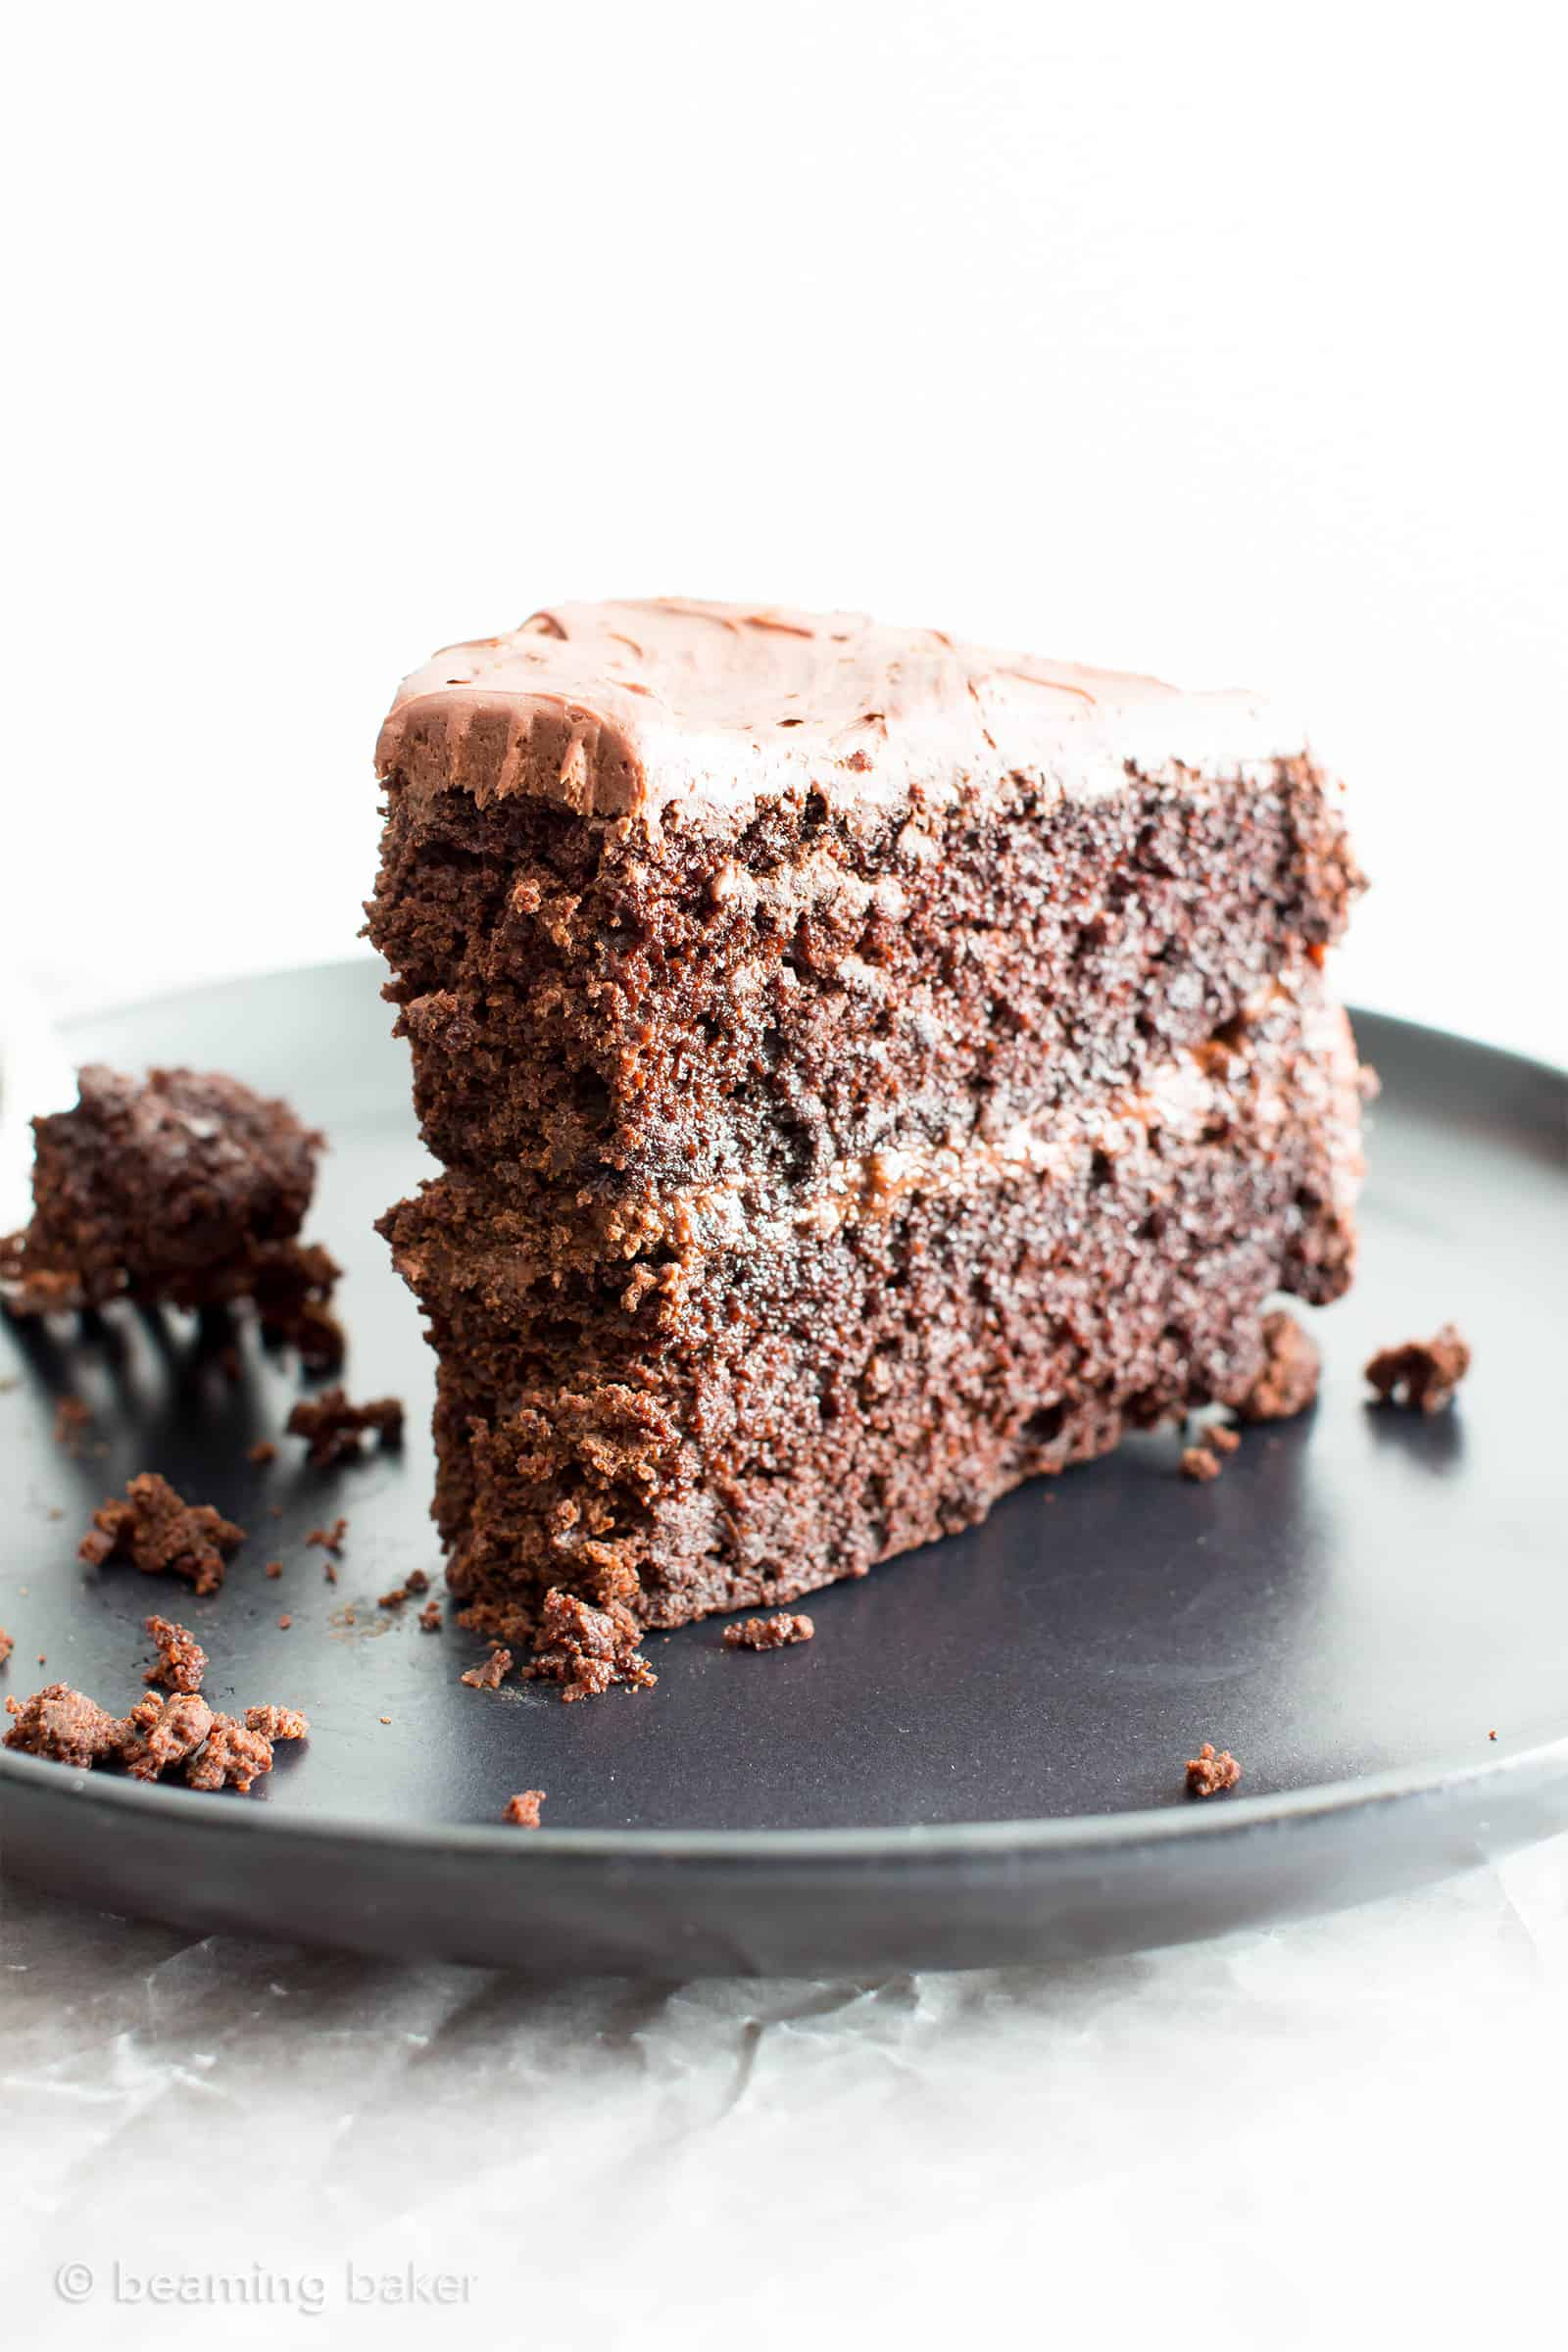 Vegan Chocolate Cake Recipe (Gluten Free, Dairy,Free, V, Refined Sugar,Free)